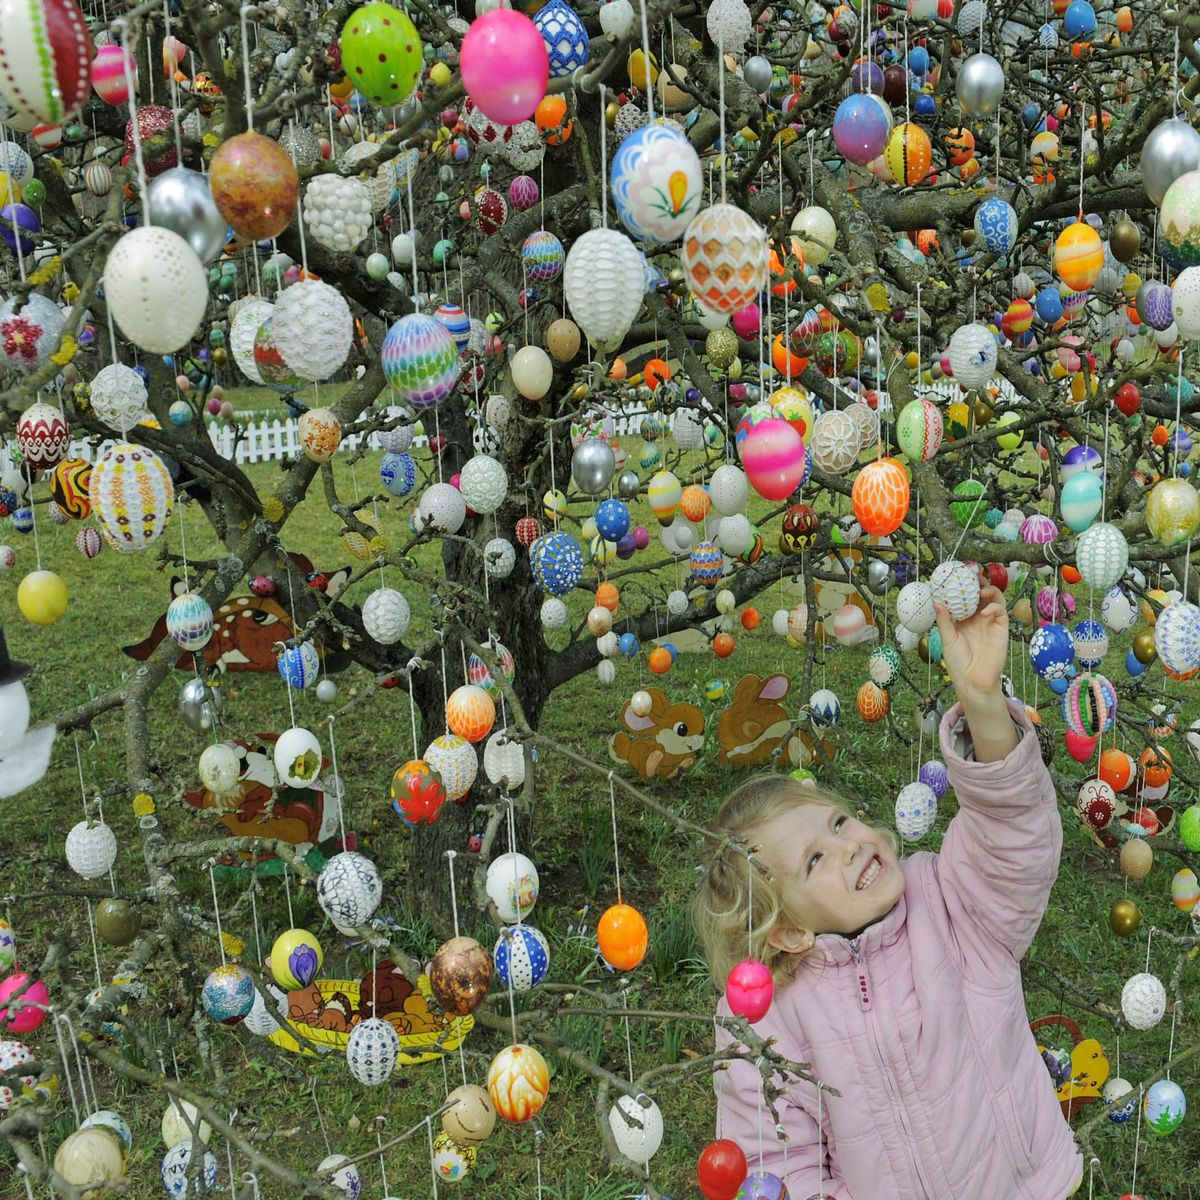 Germany's Easter Enthusiasm: Painted Eggs, Decorated Trees and Fire Wheels - DER SPIEGEL